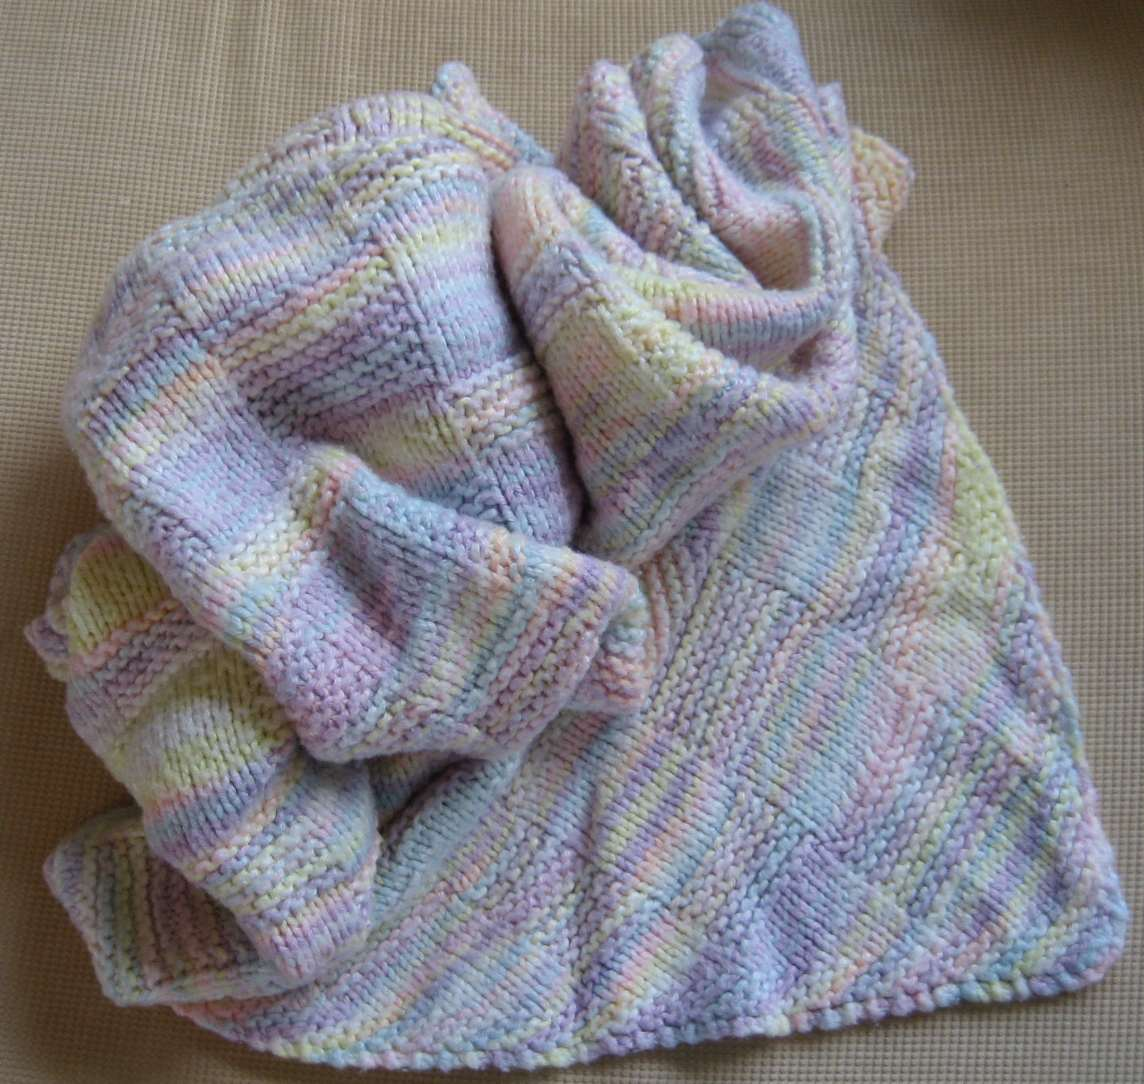 Knitting Pattern For Newborn Blanket : knit baby blanket-Knitting Gallery